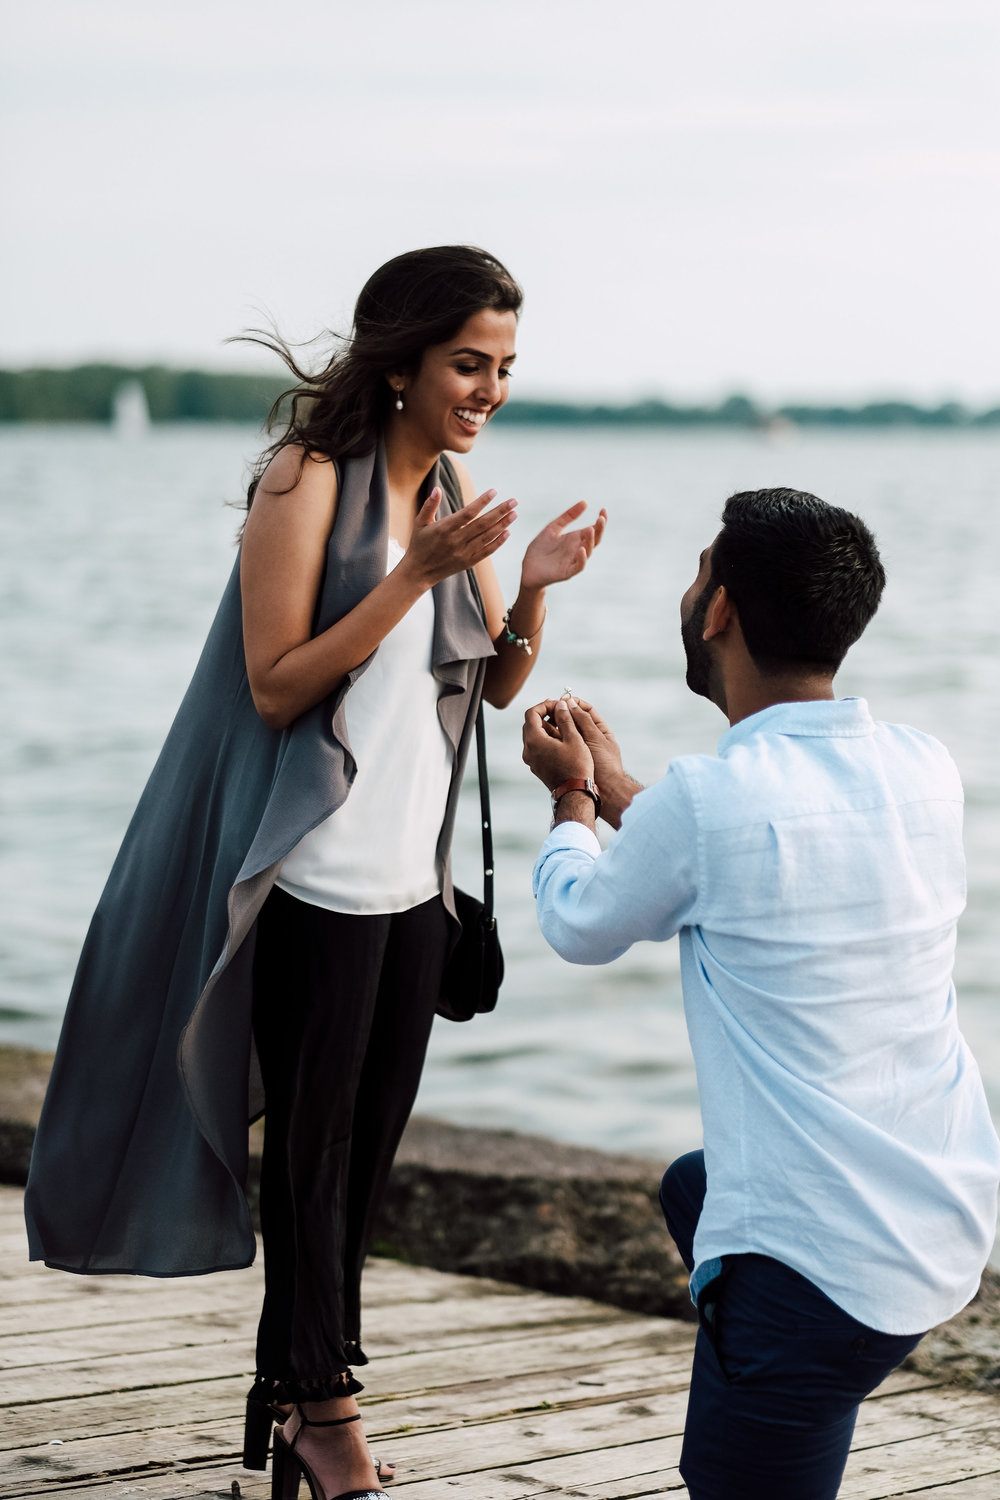 Proposal at polson pier captured by both photo & cinema